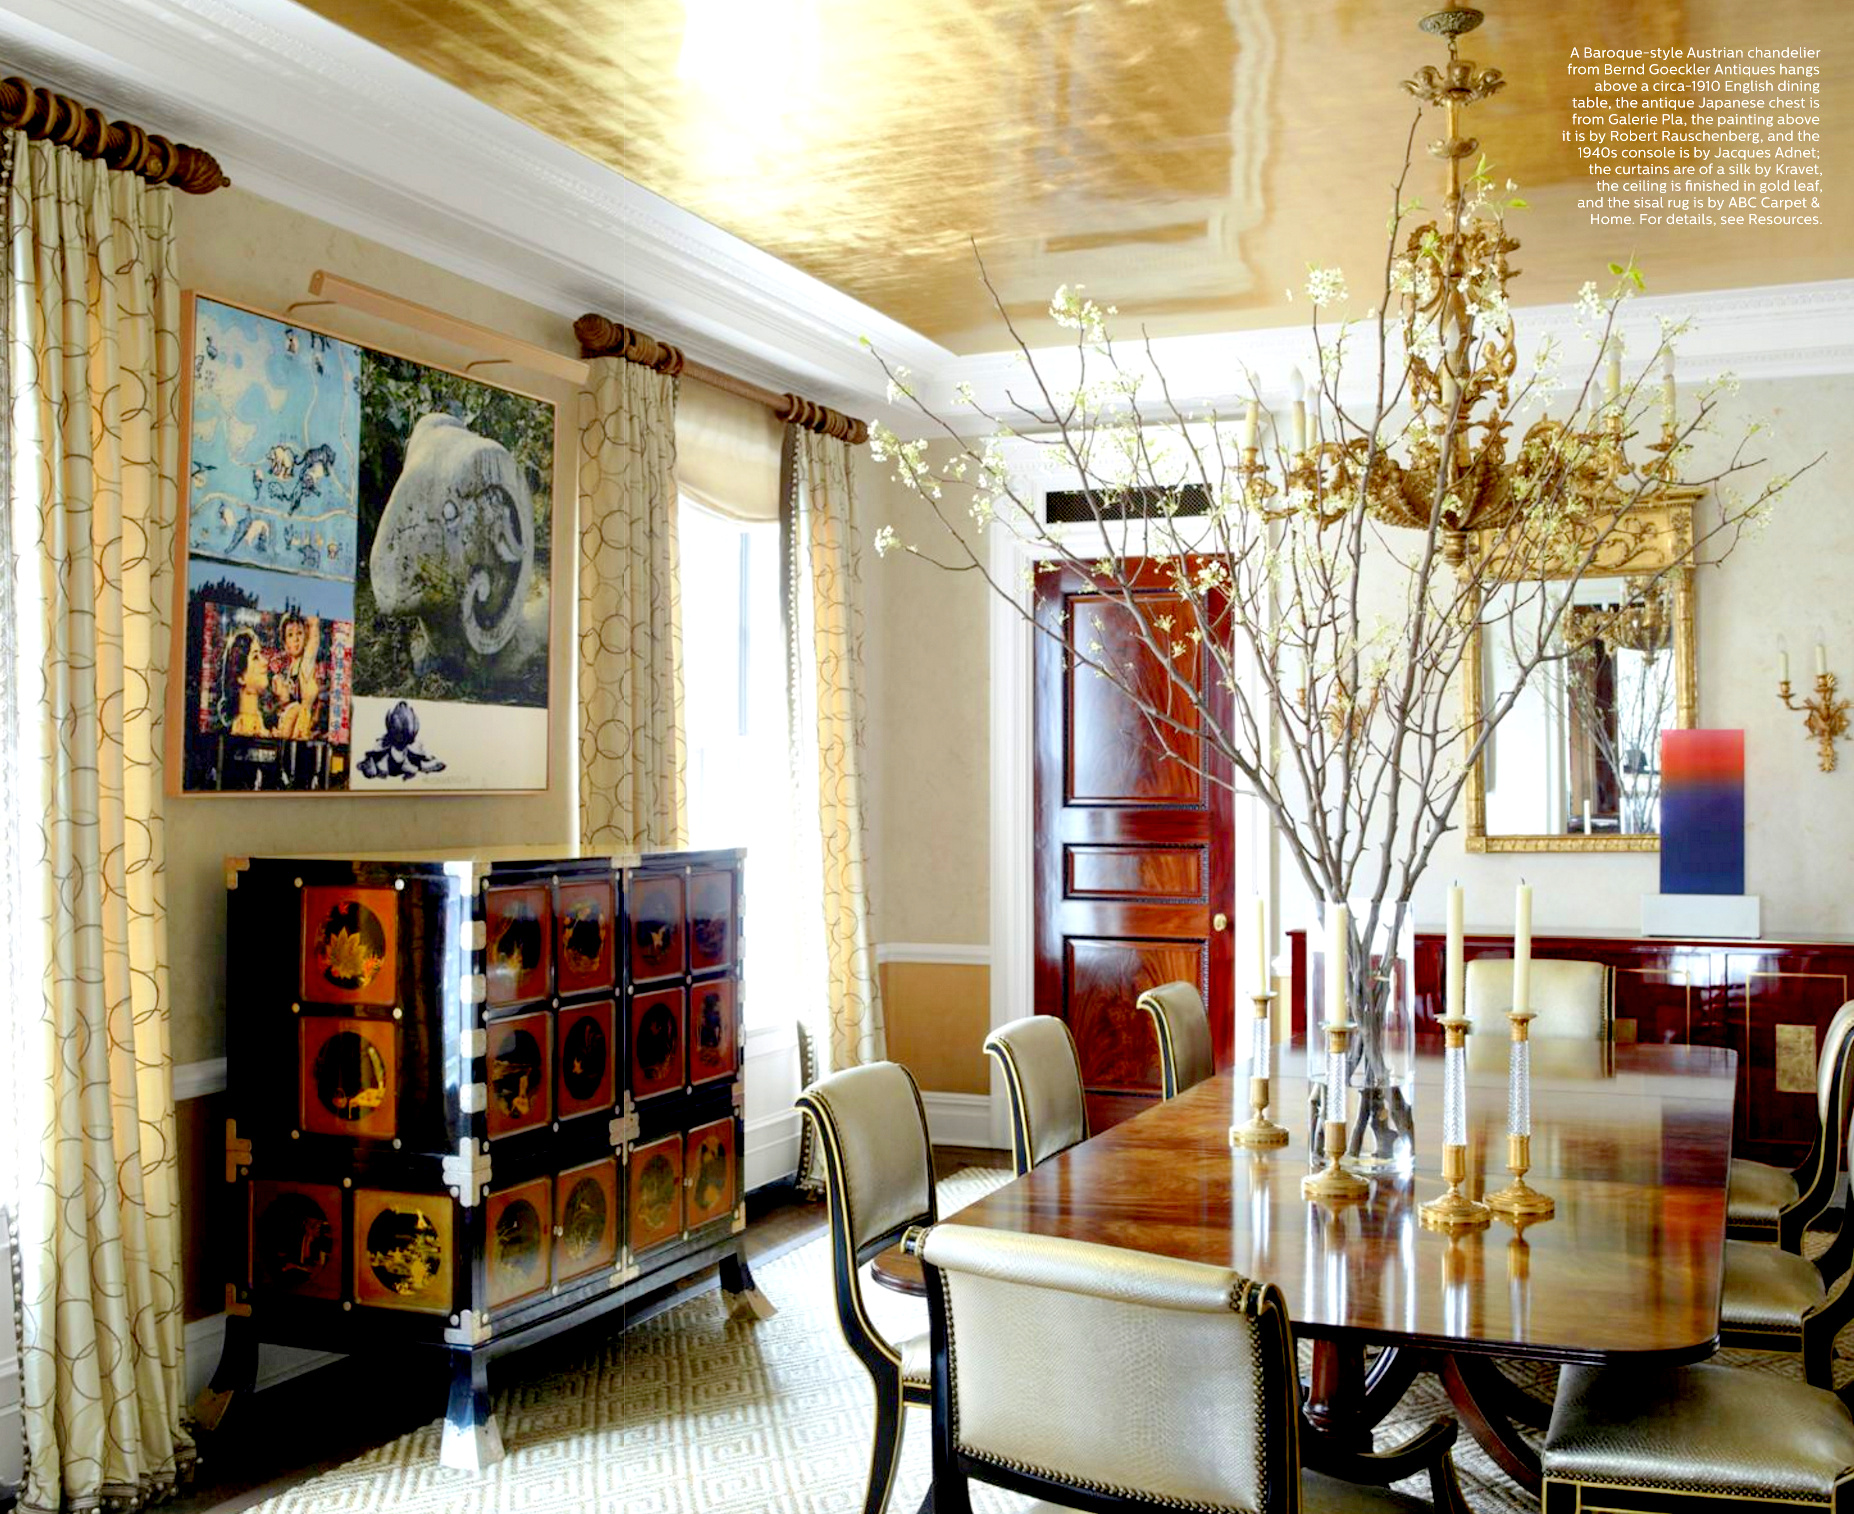 Ha ha hanging curtains interior design - Ceiling Treatments Are Trending Especially Those With Highly Glossed Paint Jobs